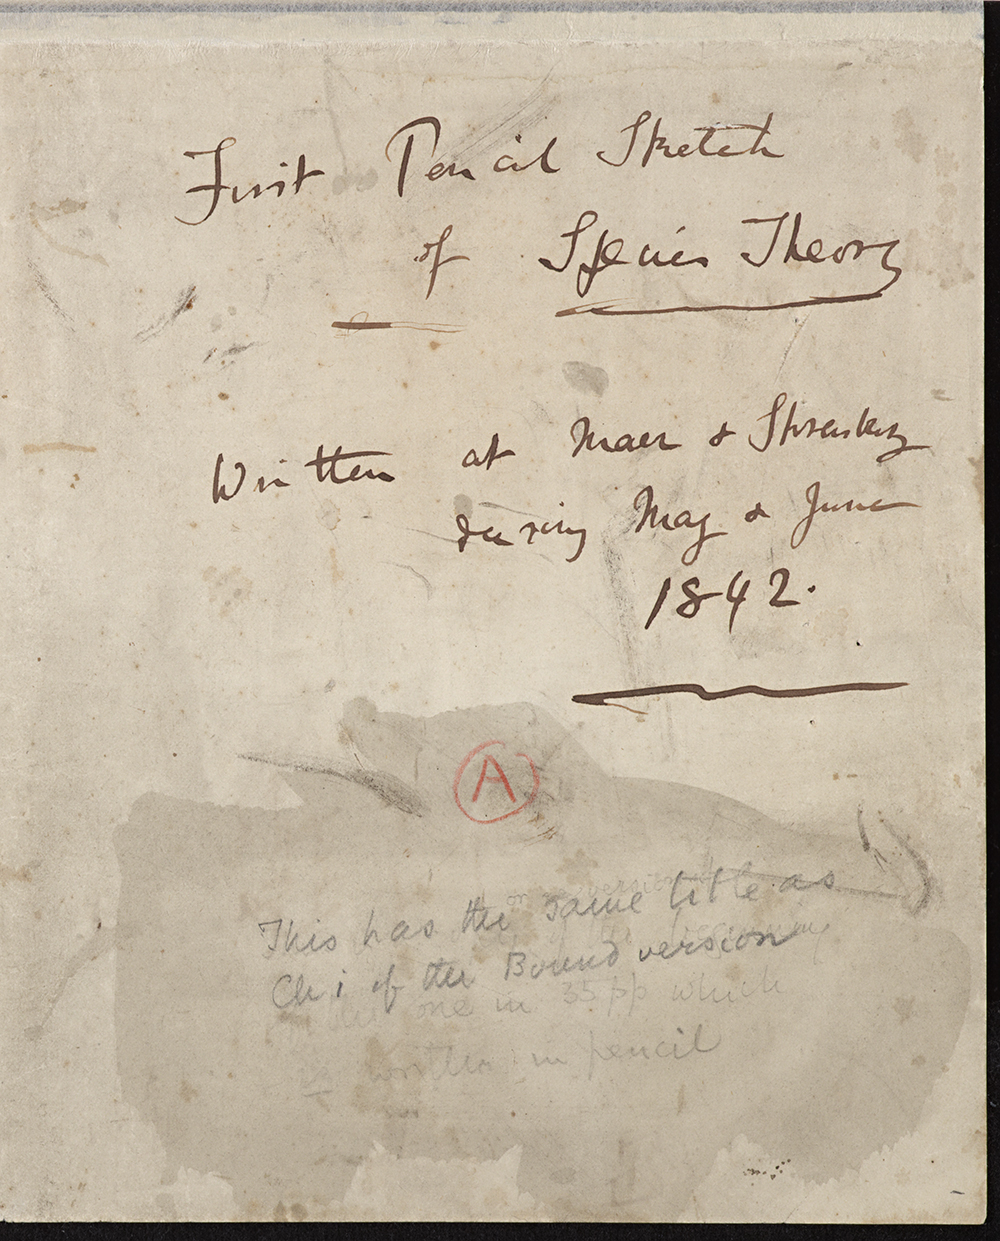 Cover sheet of Darwin's 1842 Pencil Sketch, in which he first uses the term 'Natural Selection'